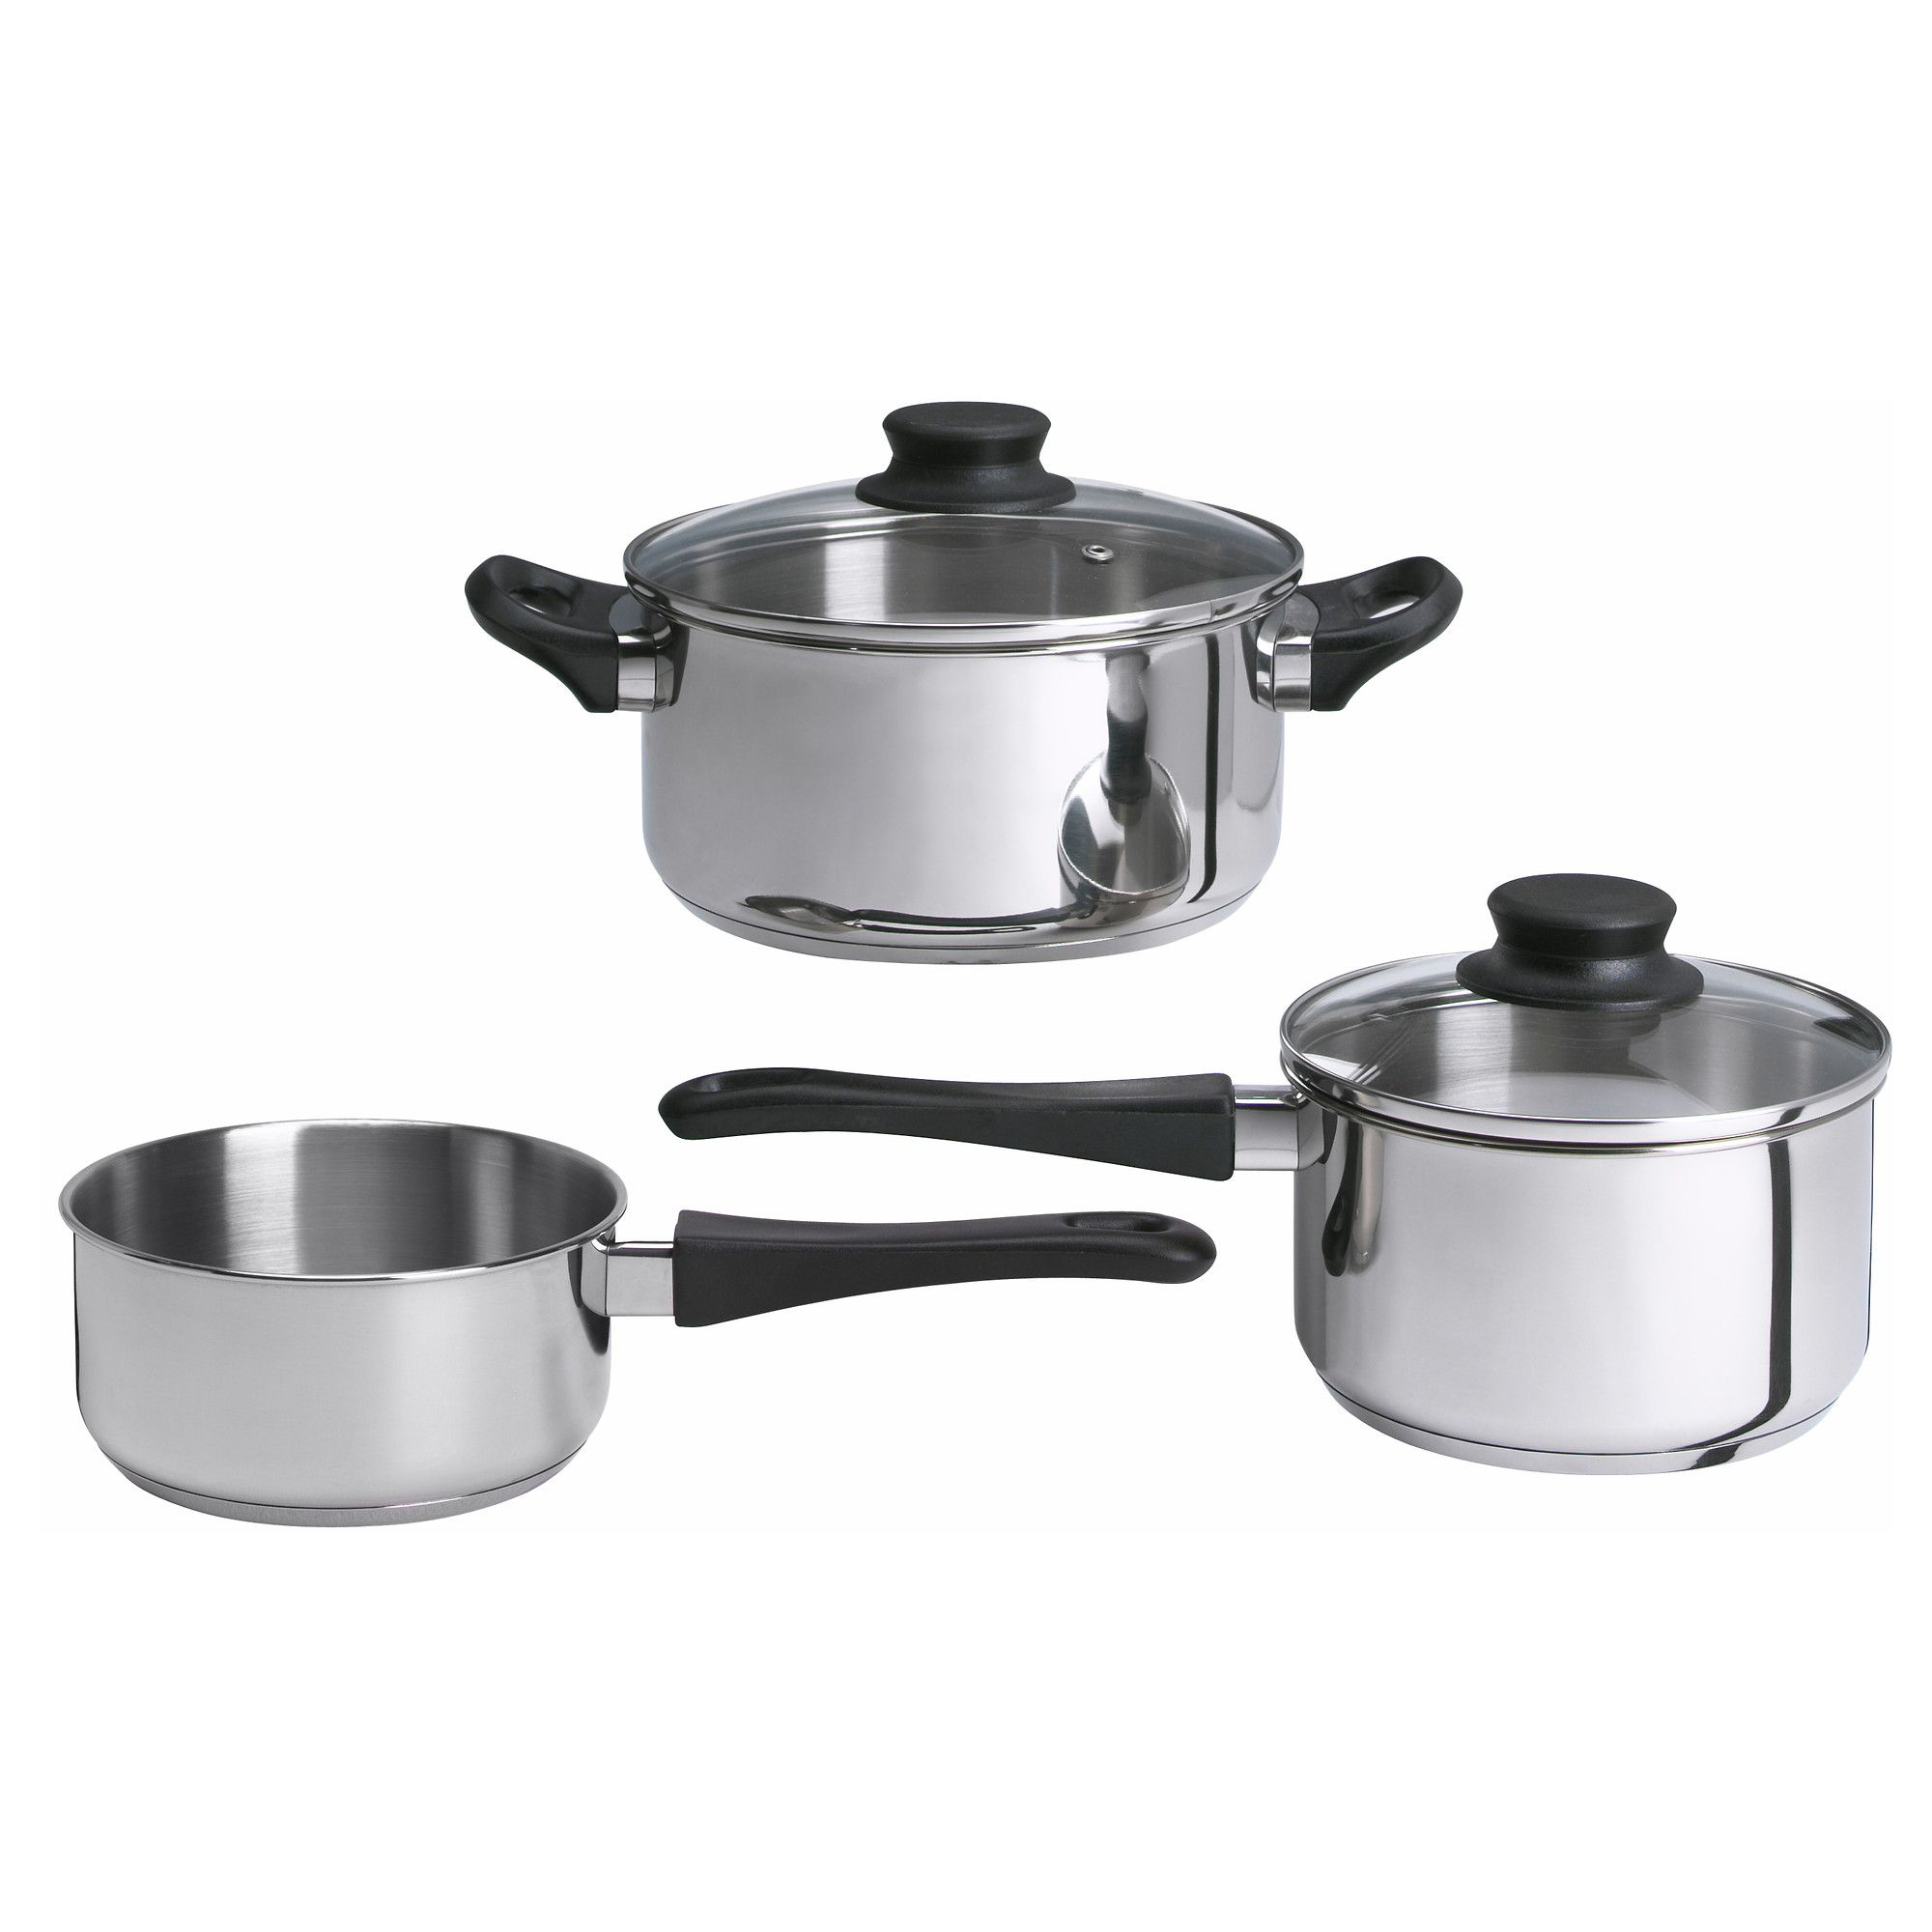 IKEA - ANNONS 5-piece cookware set glass, stainless steel